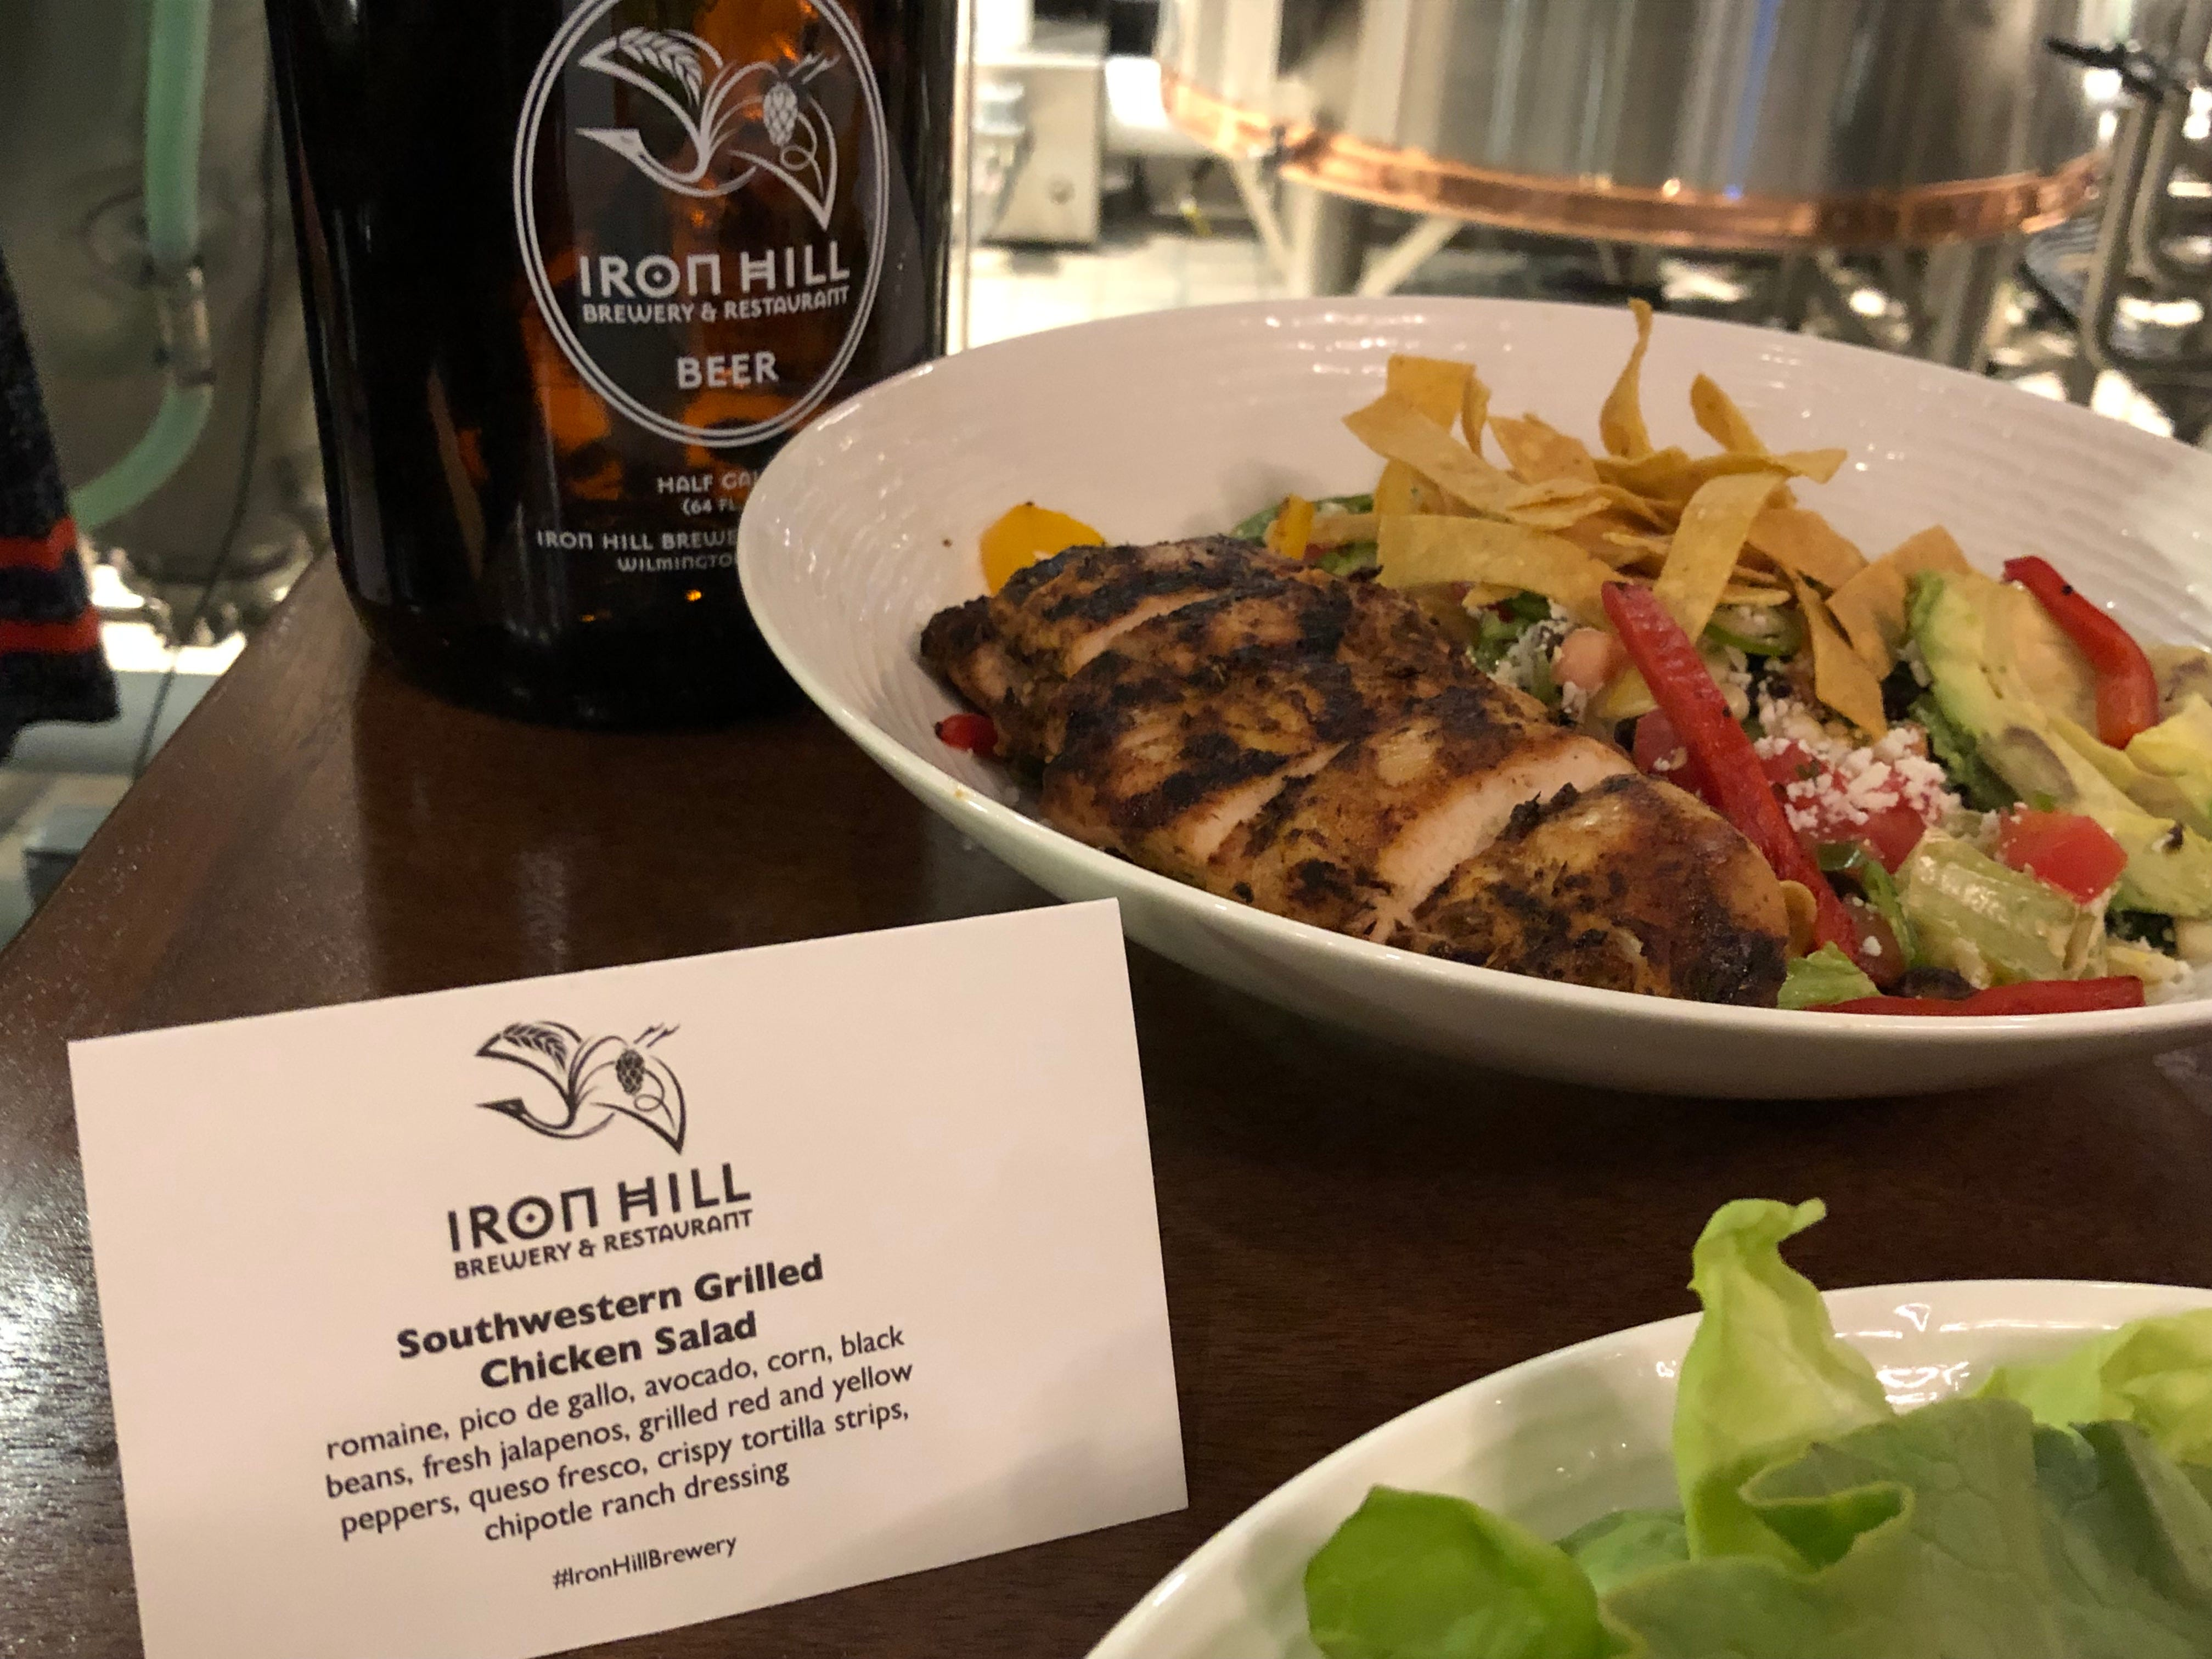 Beware: The Southwestern Grilled Chicken Salad at Iron Hill Brewery & Restaurant has some kick.